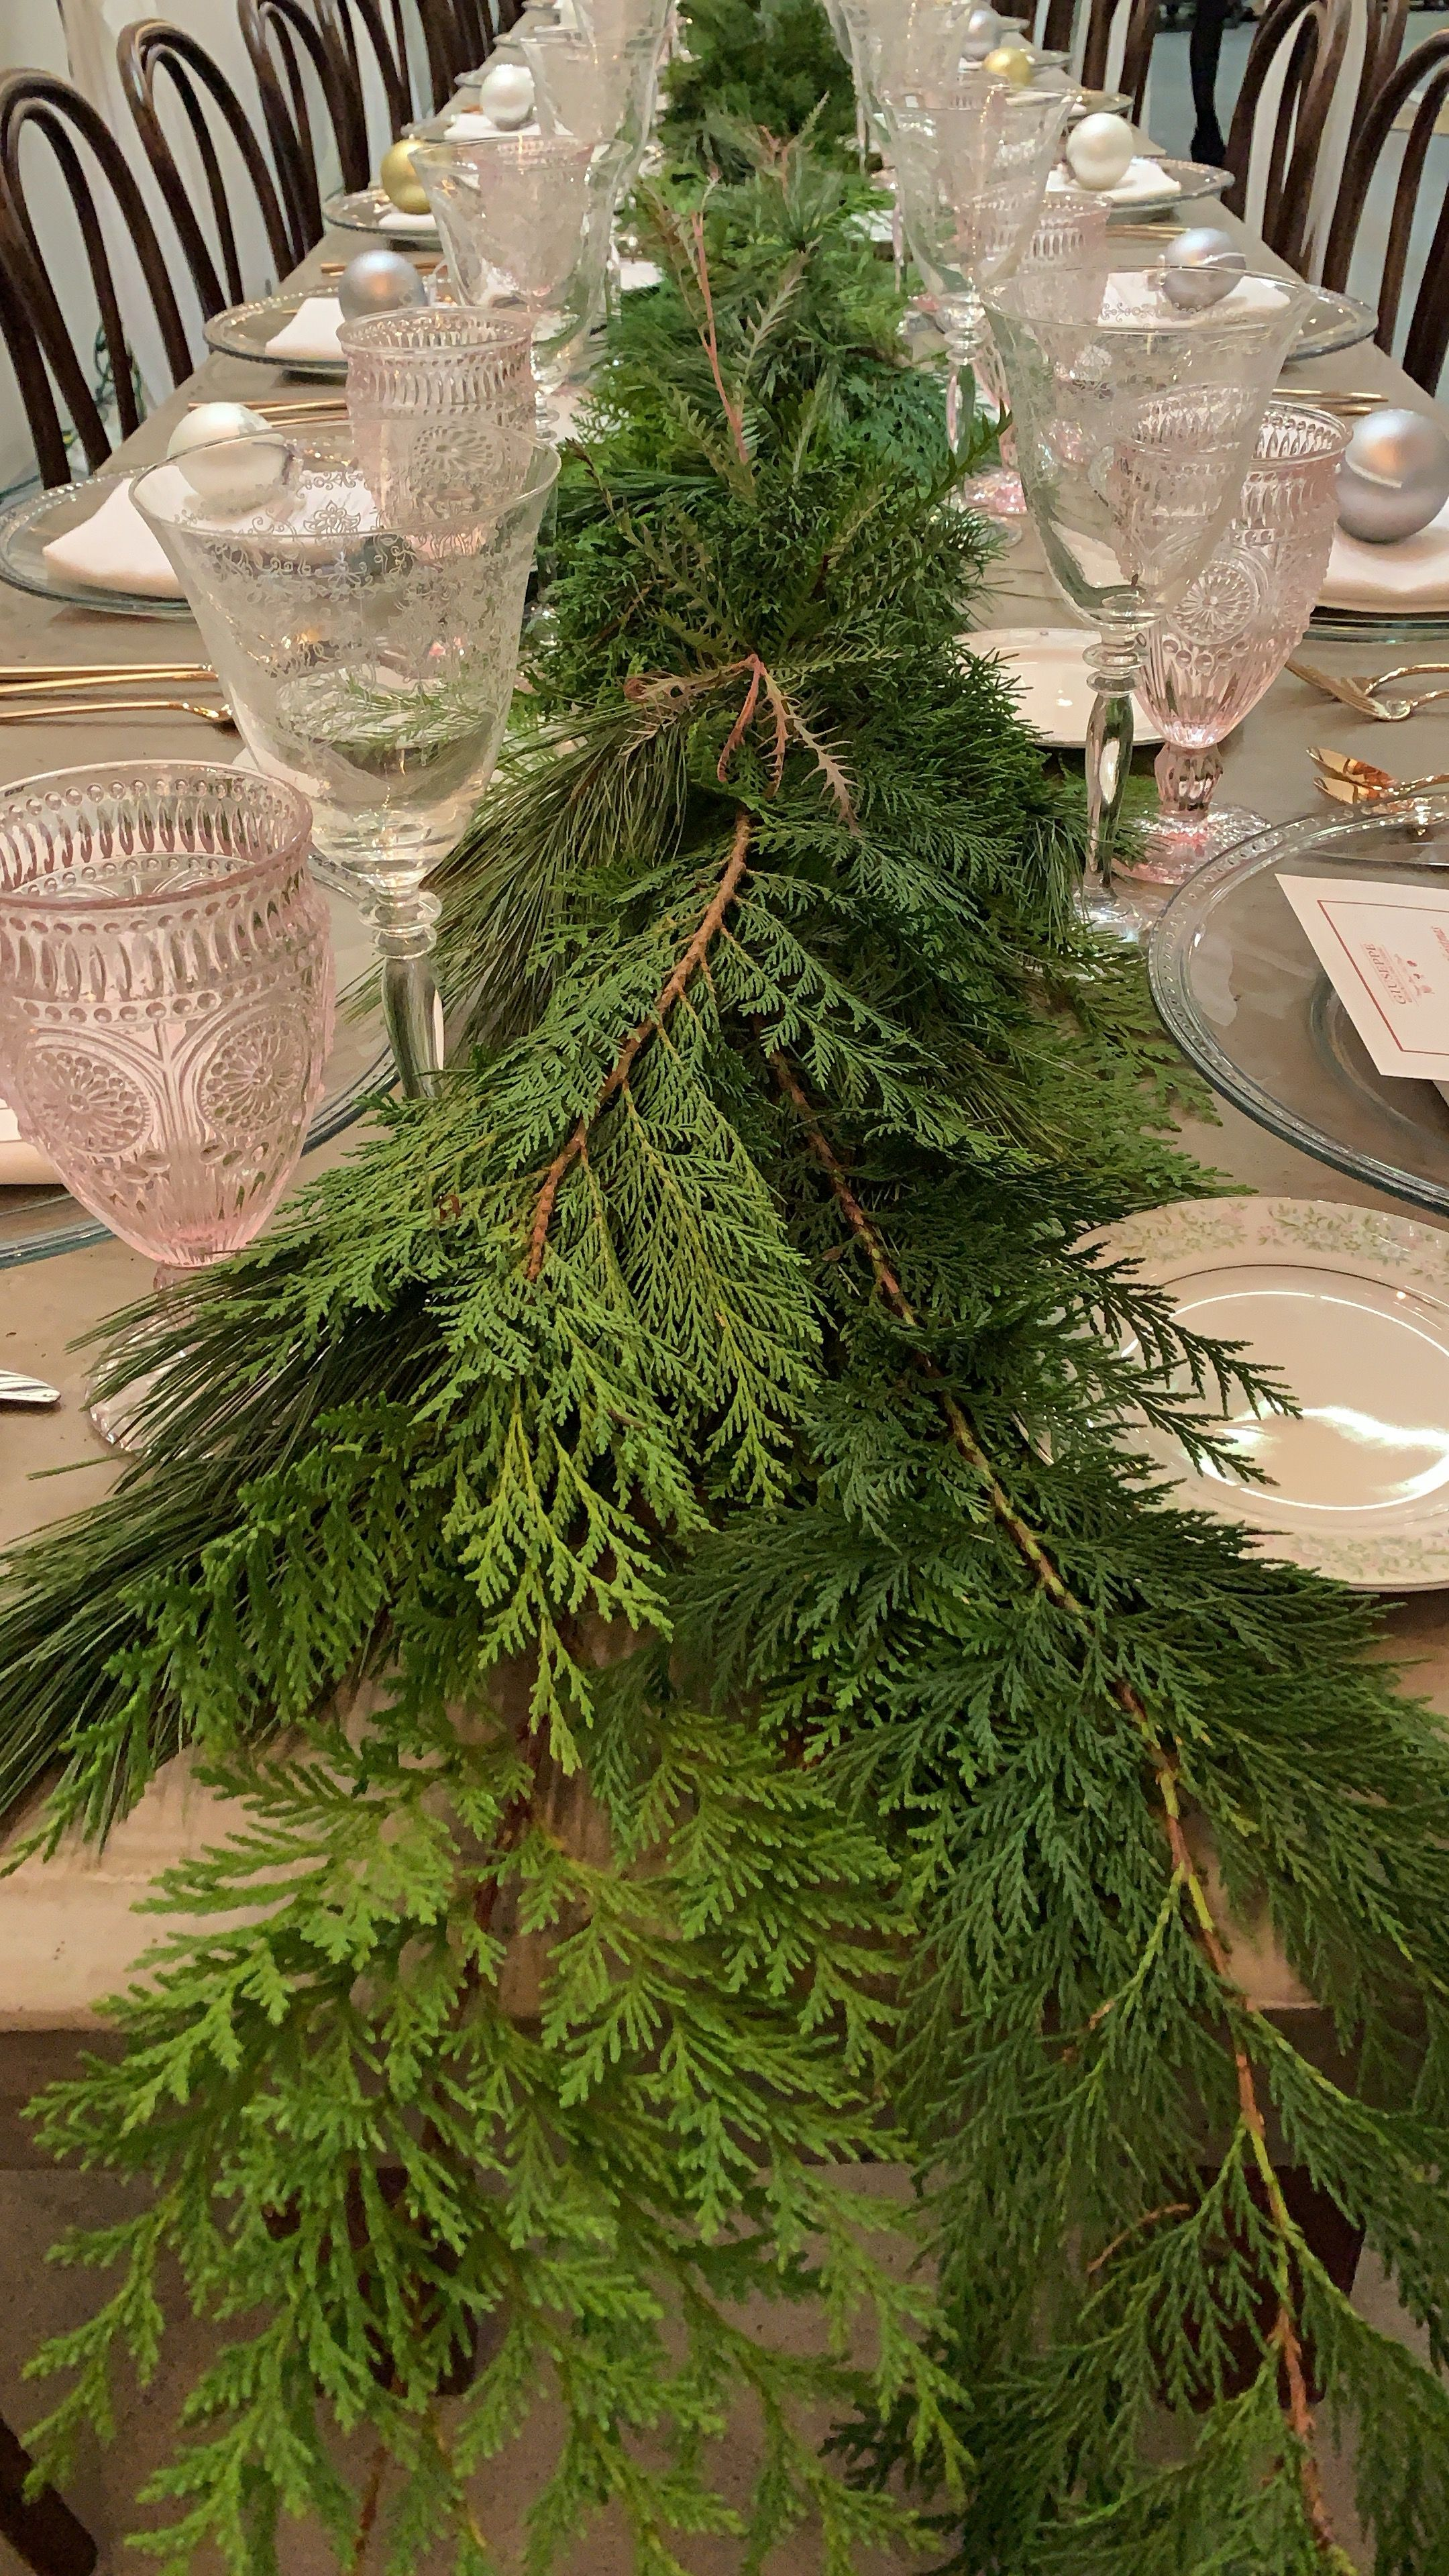 Pine Table Runner Holiday Table Decorations Holiday Decor Christmas Christmas Runner